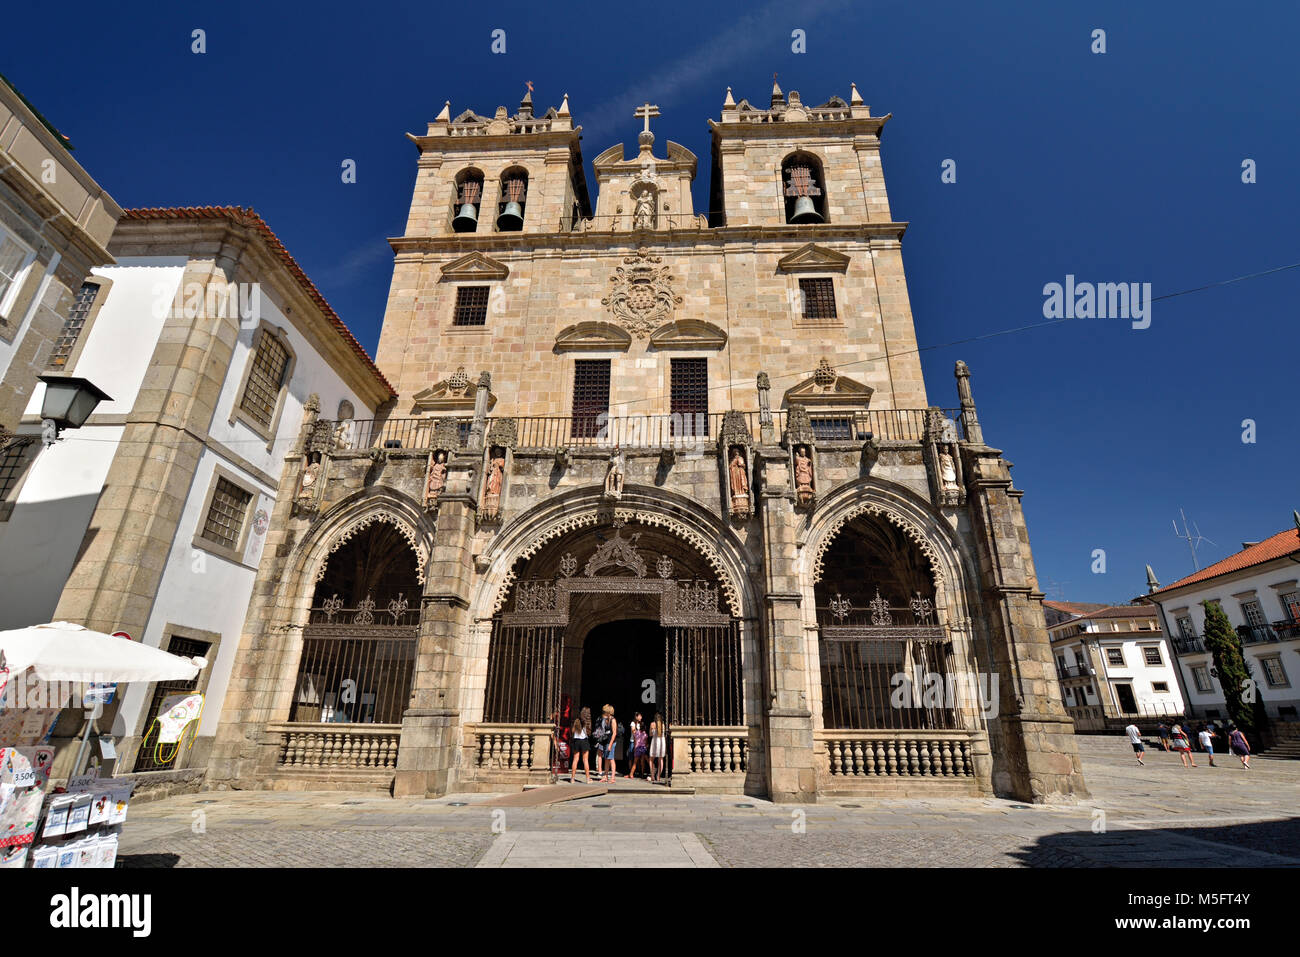 Main facade of medieval cathedral - Stock Image